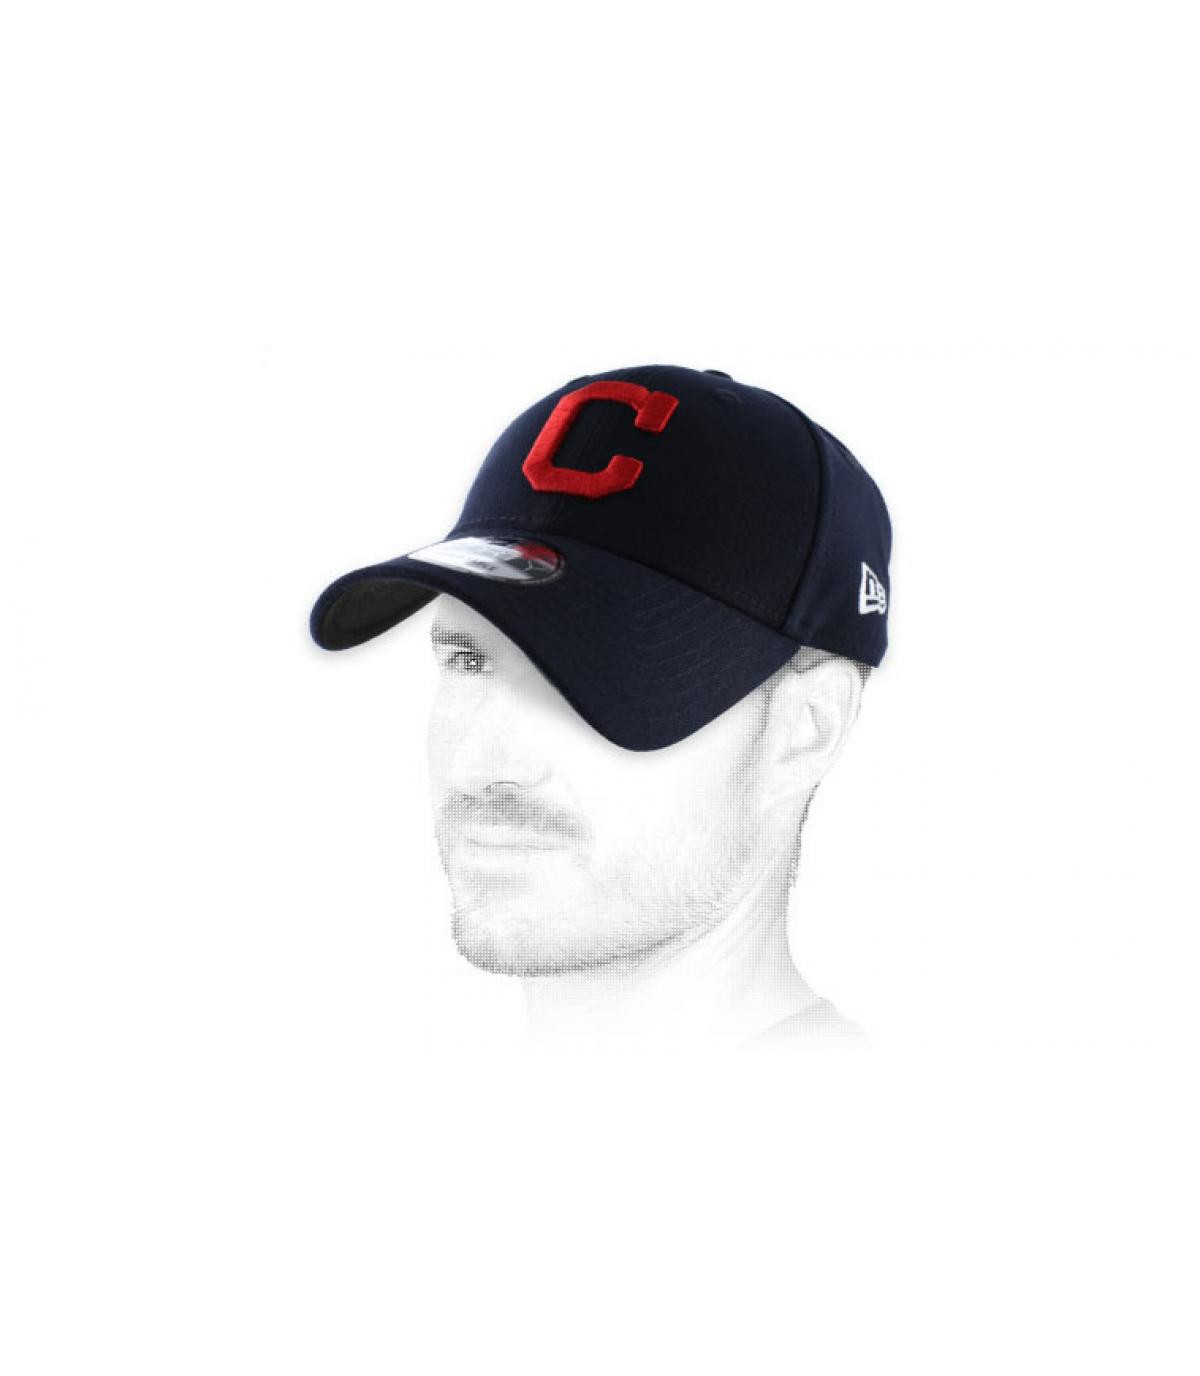 C red and blue curve cap